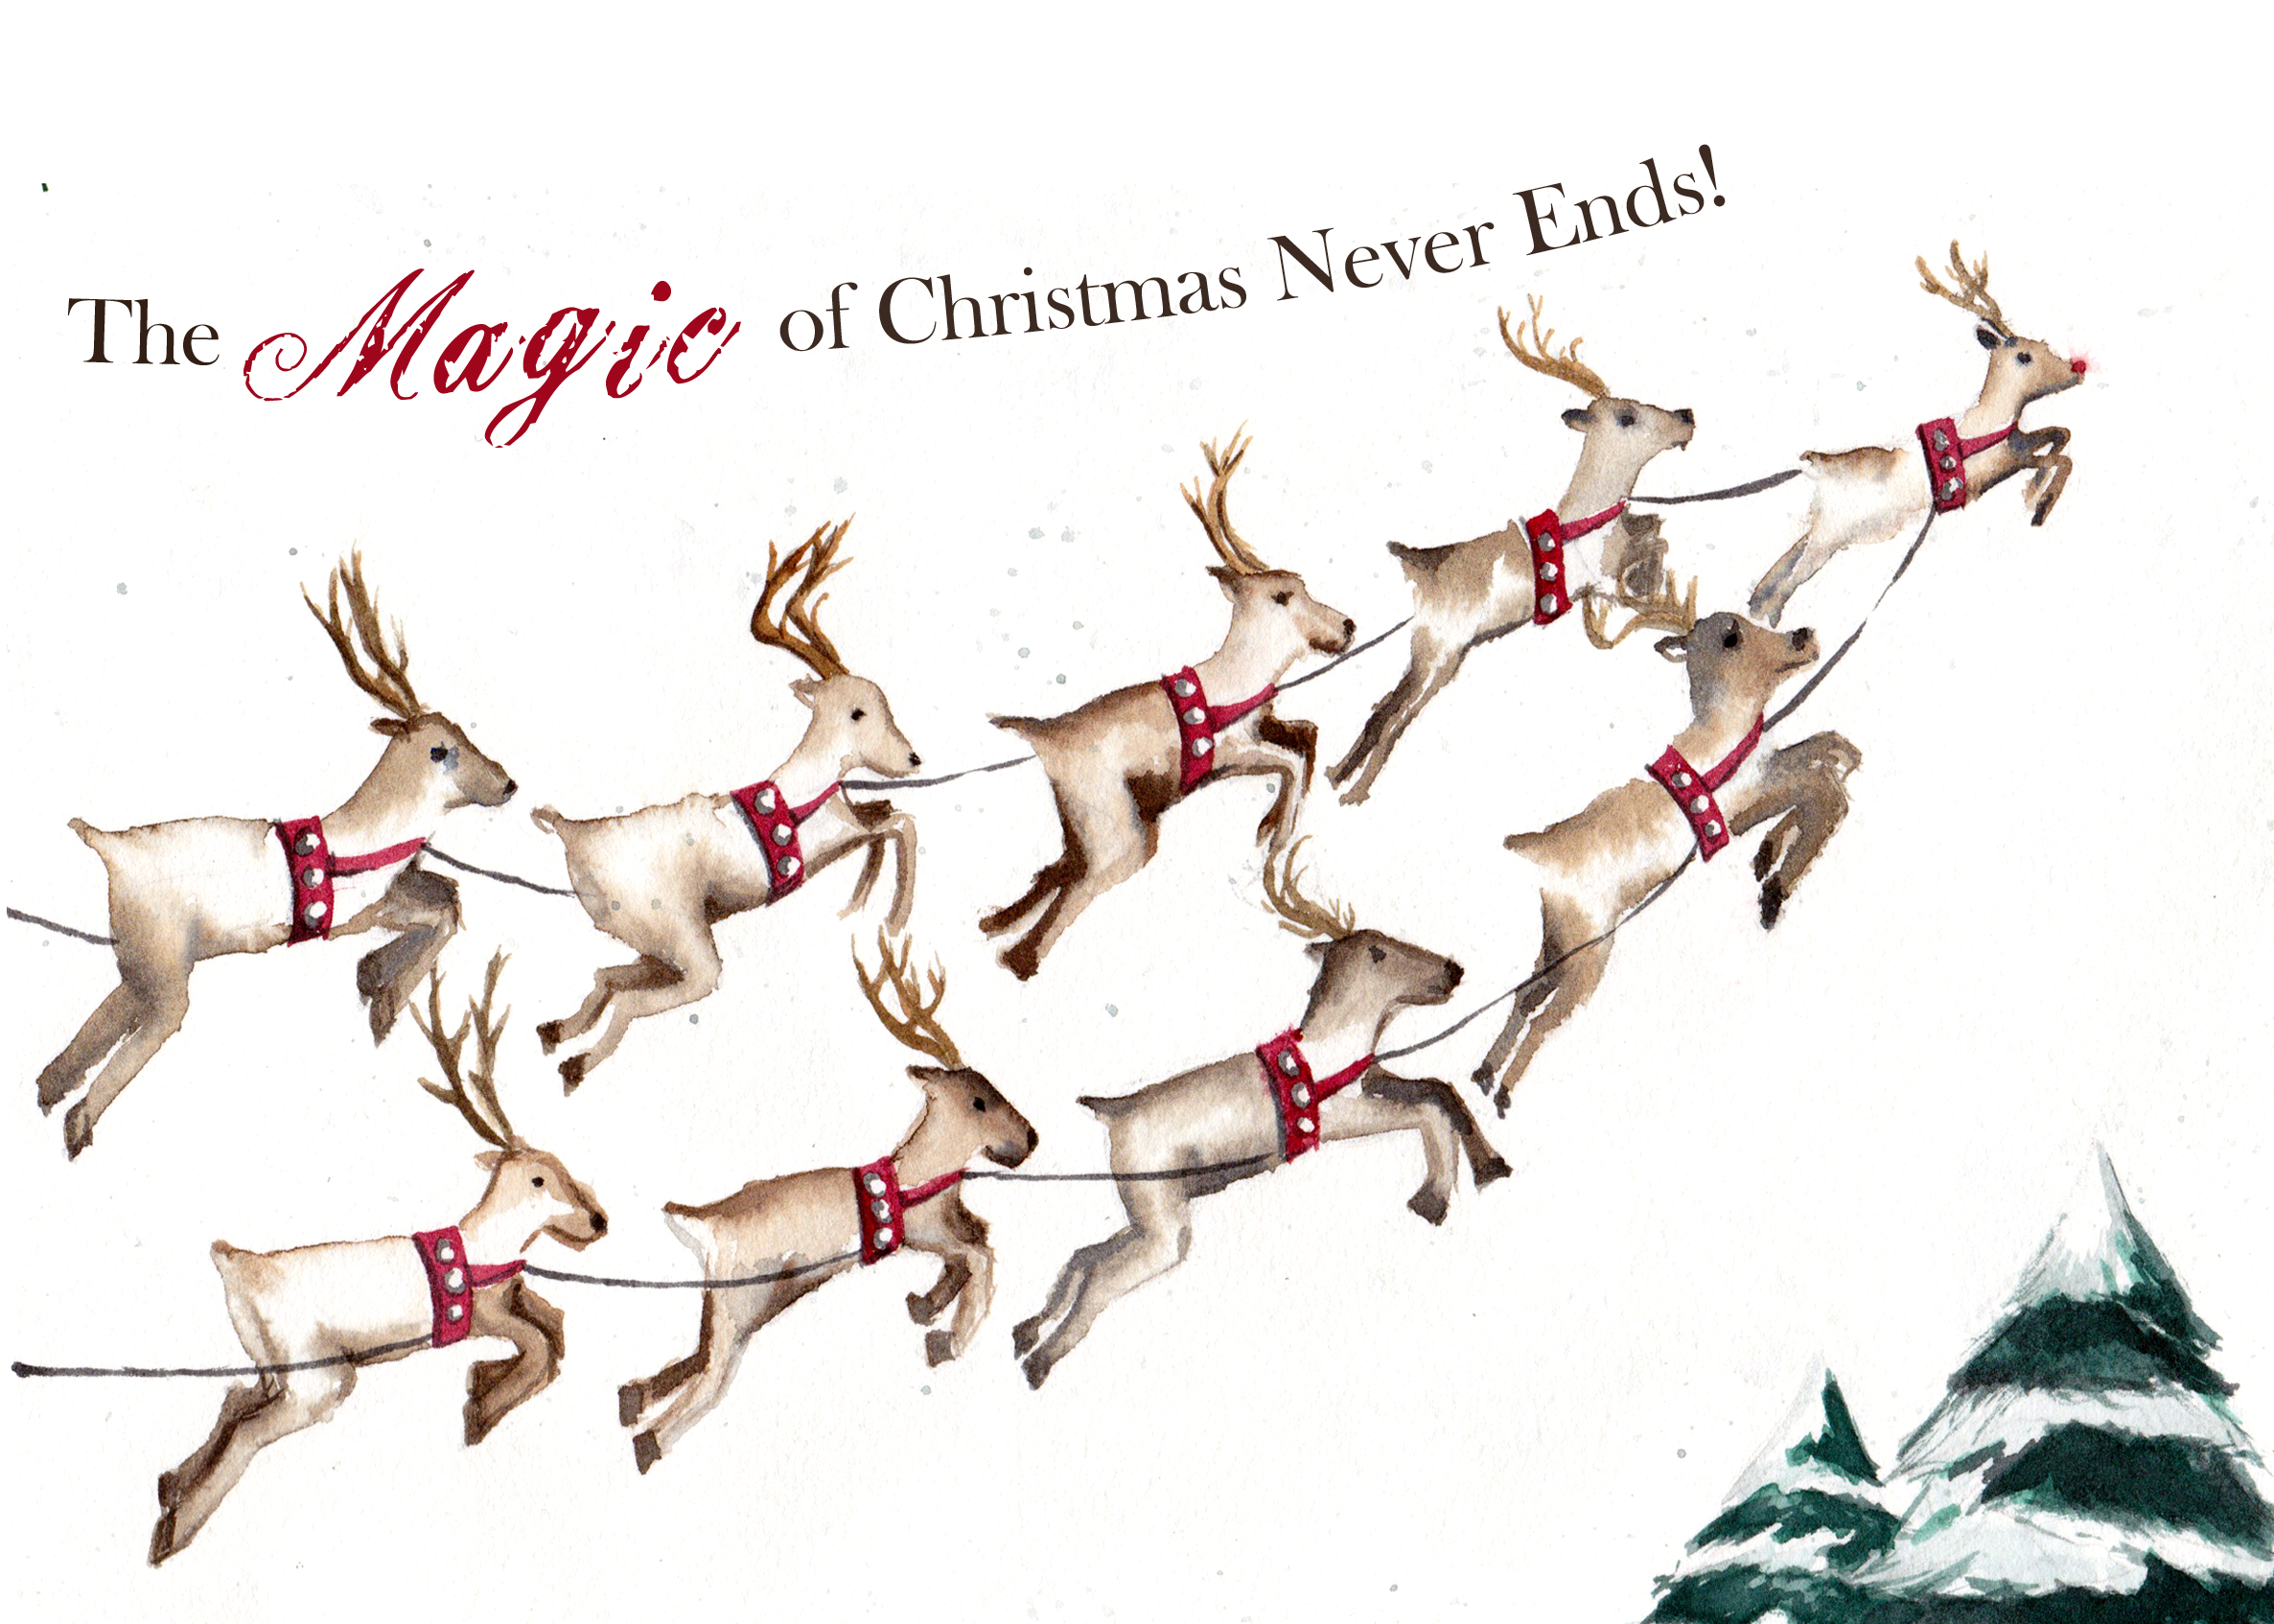 """The Magic of Christmas Never Ends"" is a watercolor painting of 9 flying reindeer printed on premium cardstock by artist Esther BeLer Wodrich"